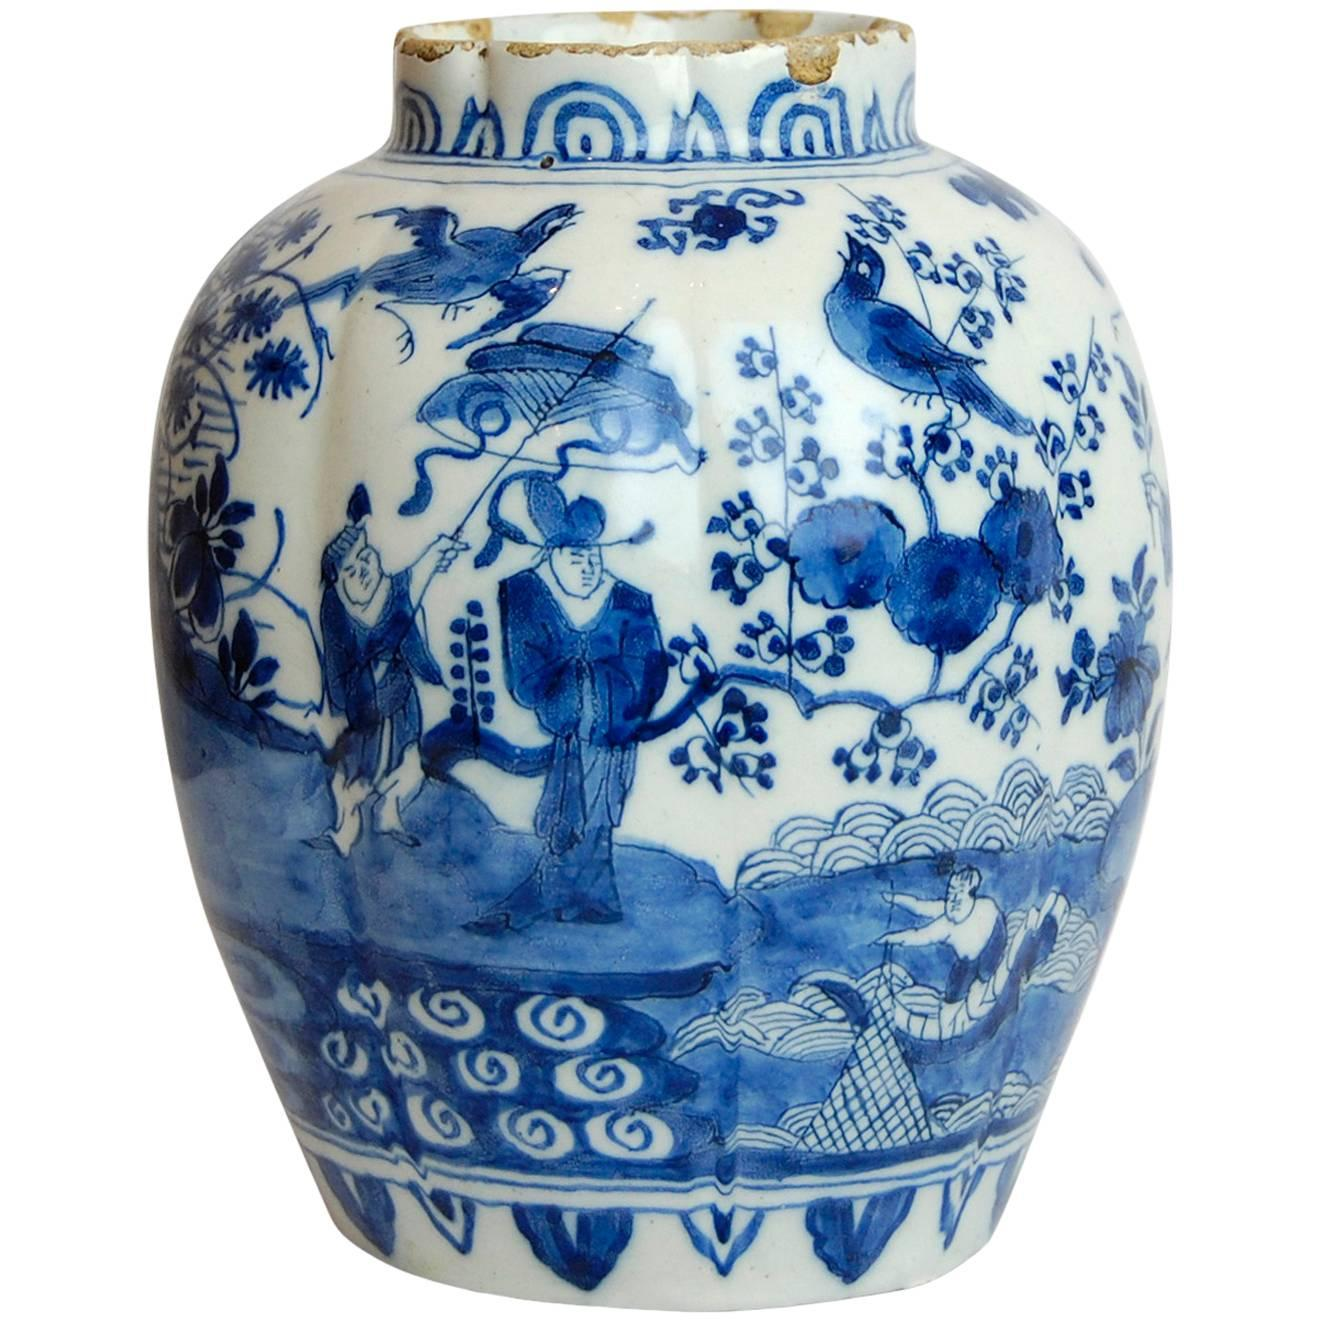 18th century dutch delft porcelain vase blue and white chinoiserie 18th century dutch delft porcelain vase blue and white chinoiserie painting at 1stdibs reviewsmspy